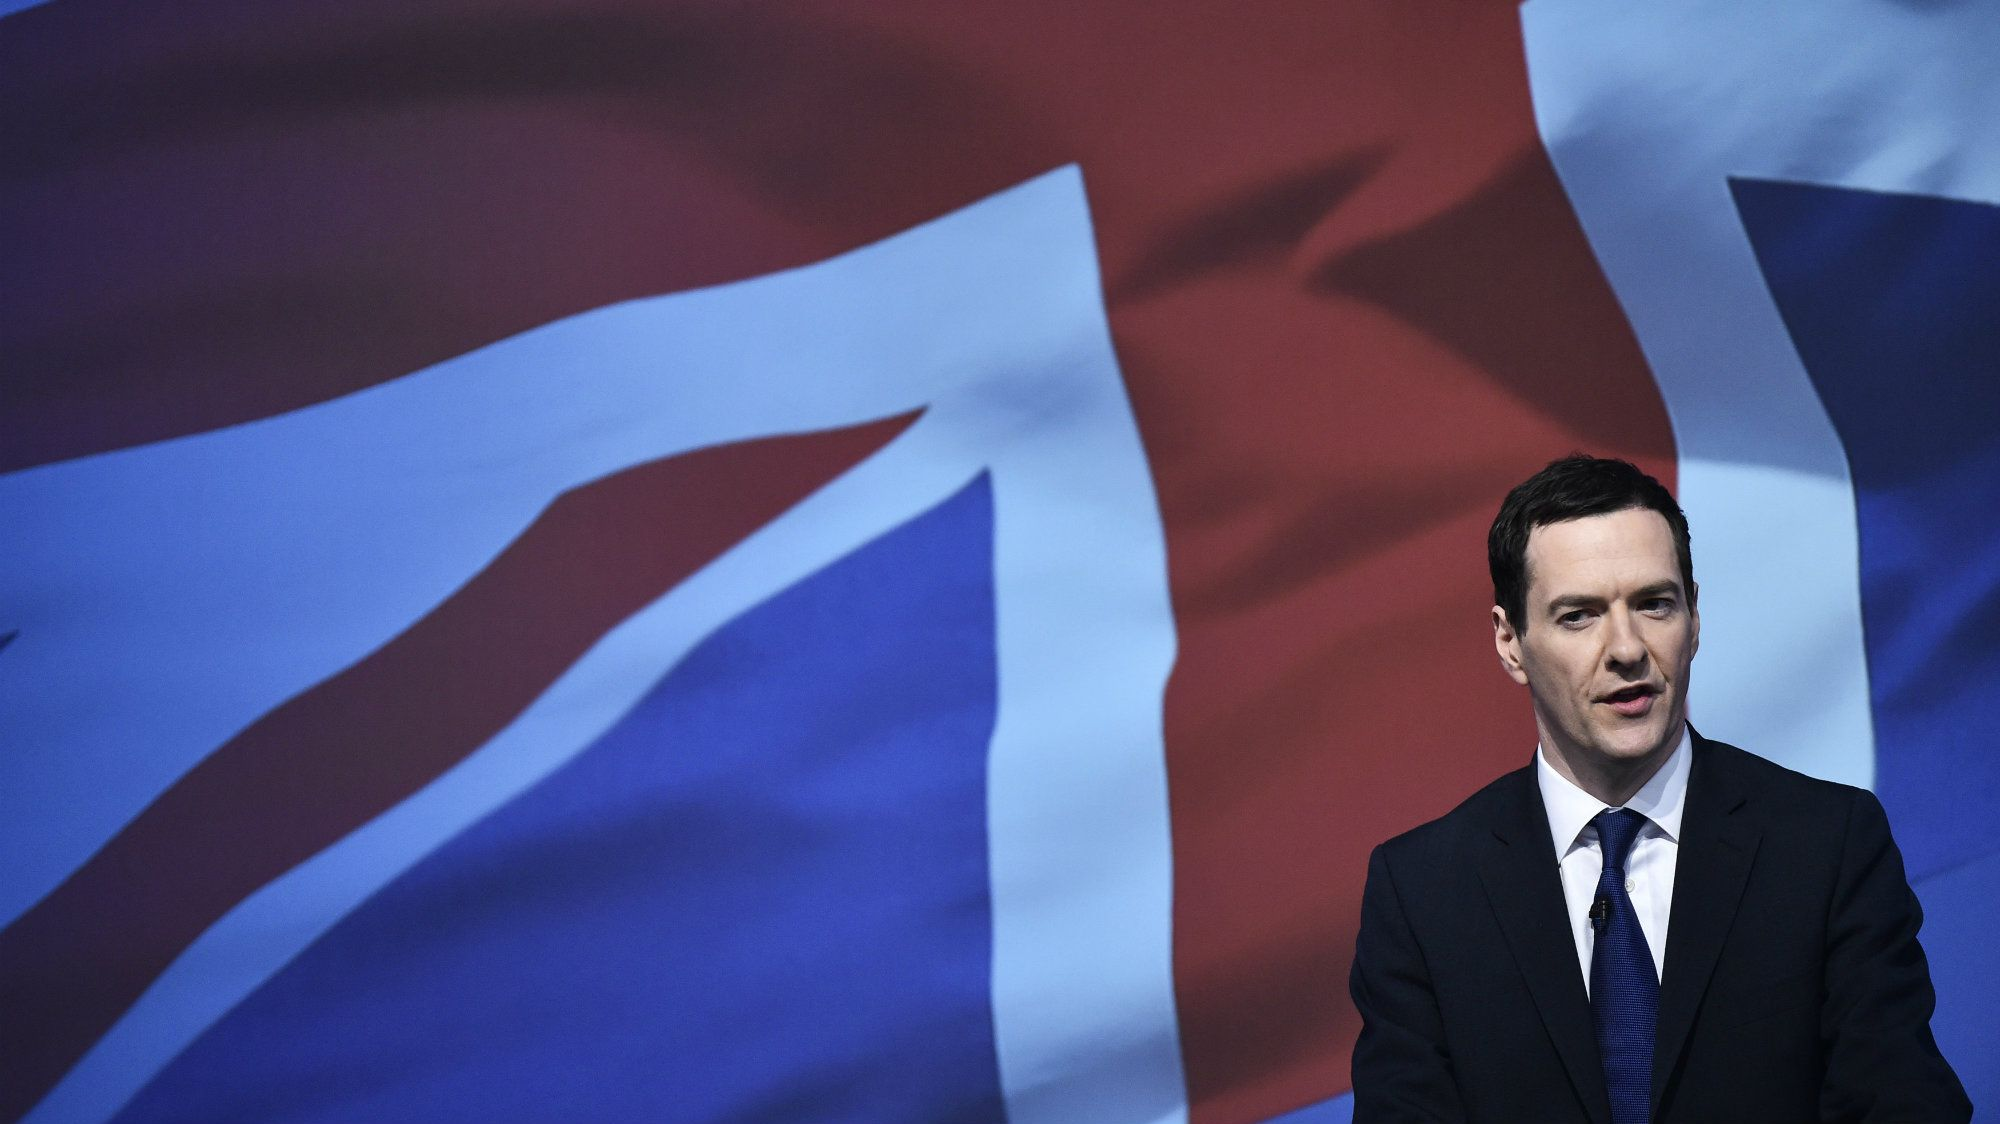 Britain's Chancellor of the Exchequer George Osborne.